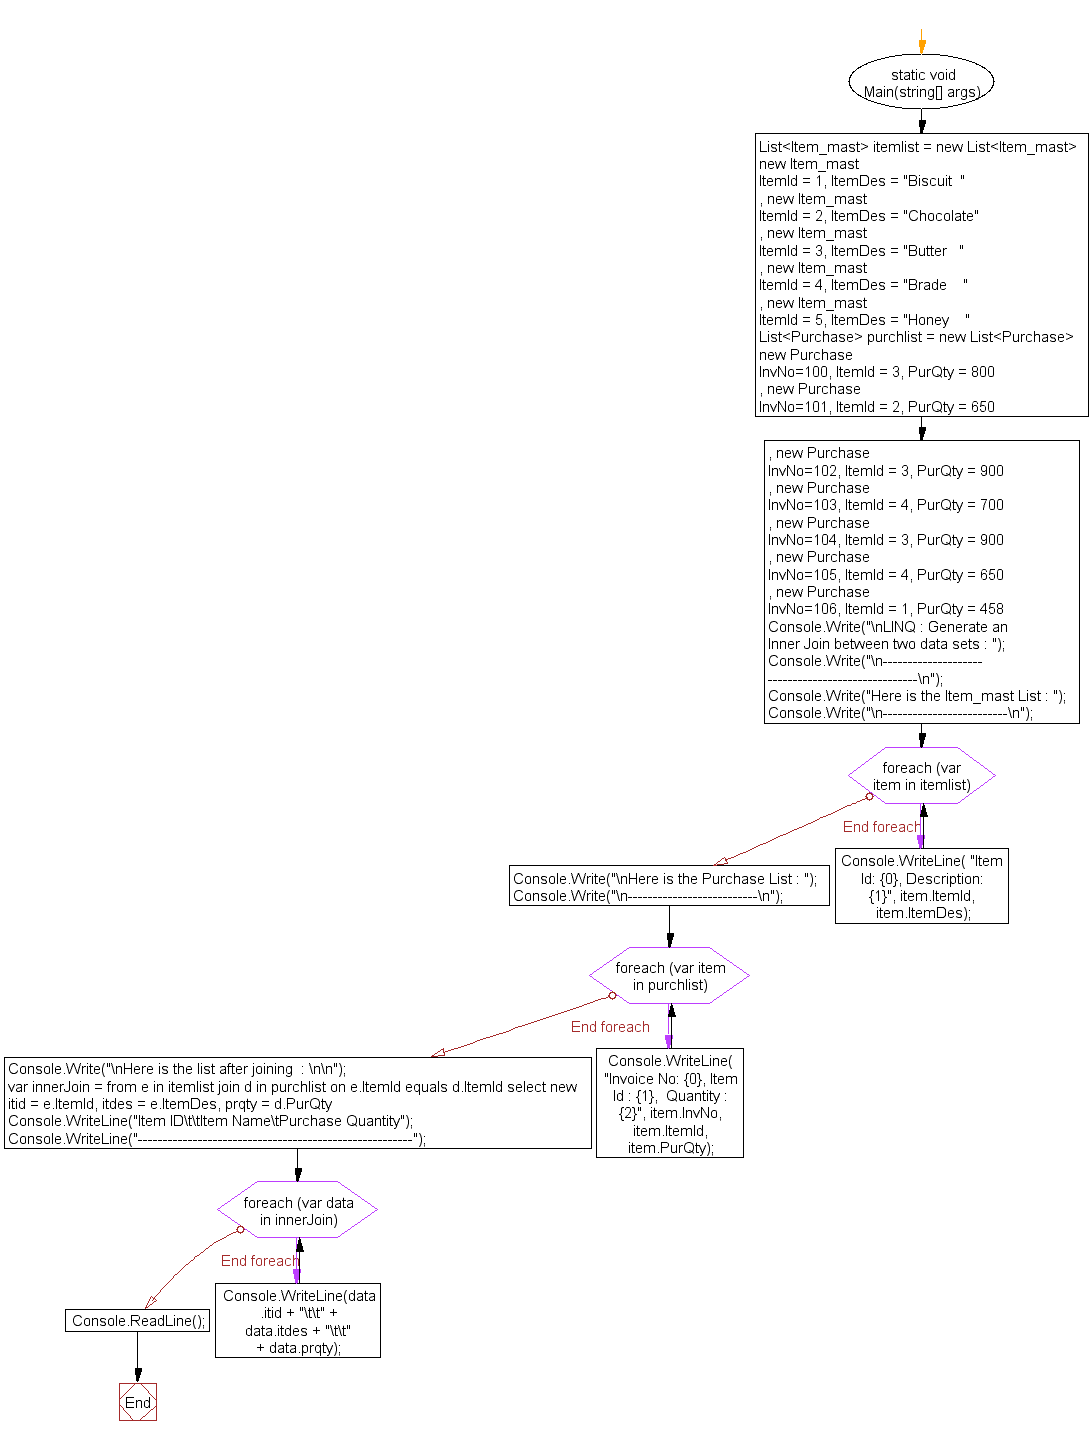 Flowchart: LINQ : Generate an Inner Join between two data sets